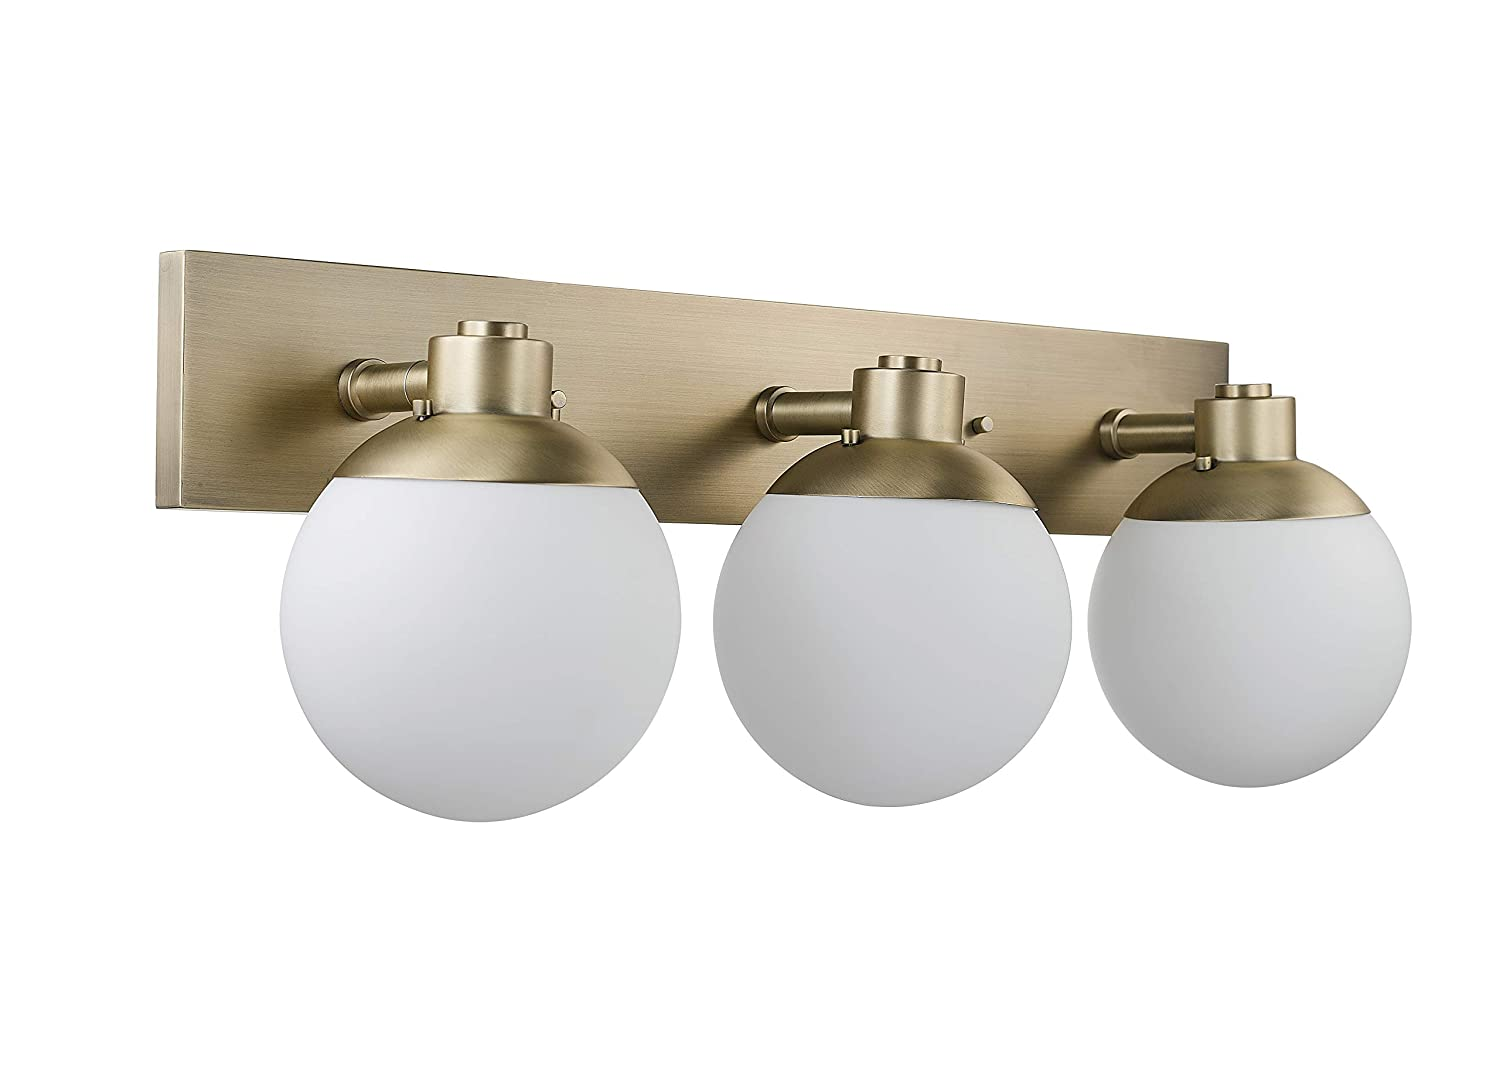 Rivet Modern Wall Sconce, 10 H, Brass